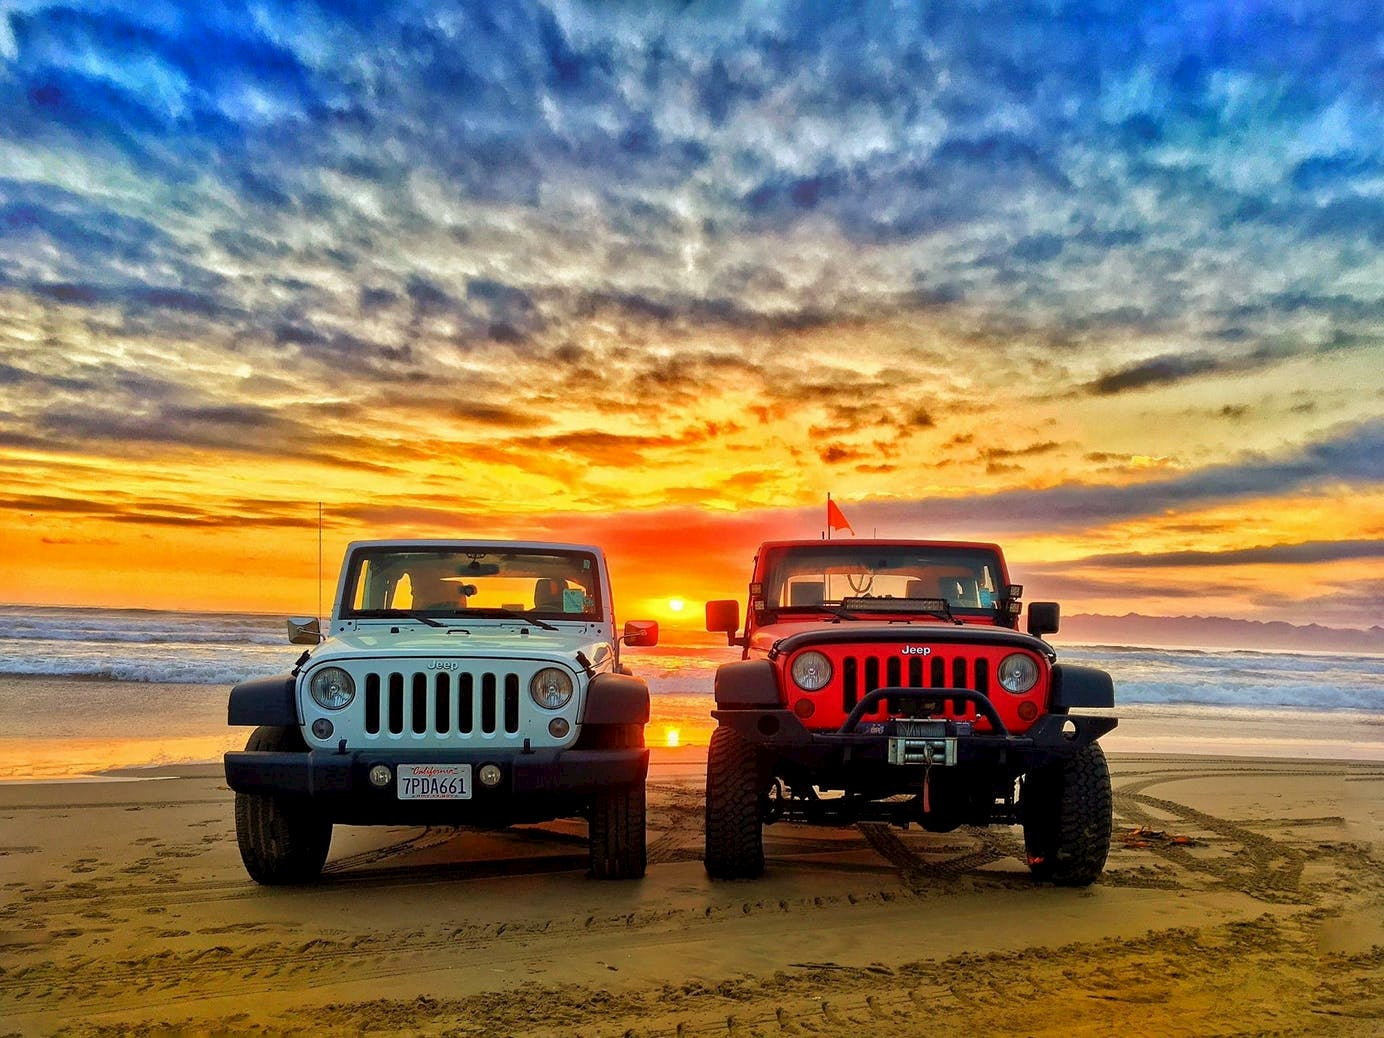 Two jeep wrangles parked beside each other on the beach at sunset.